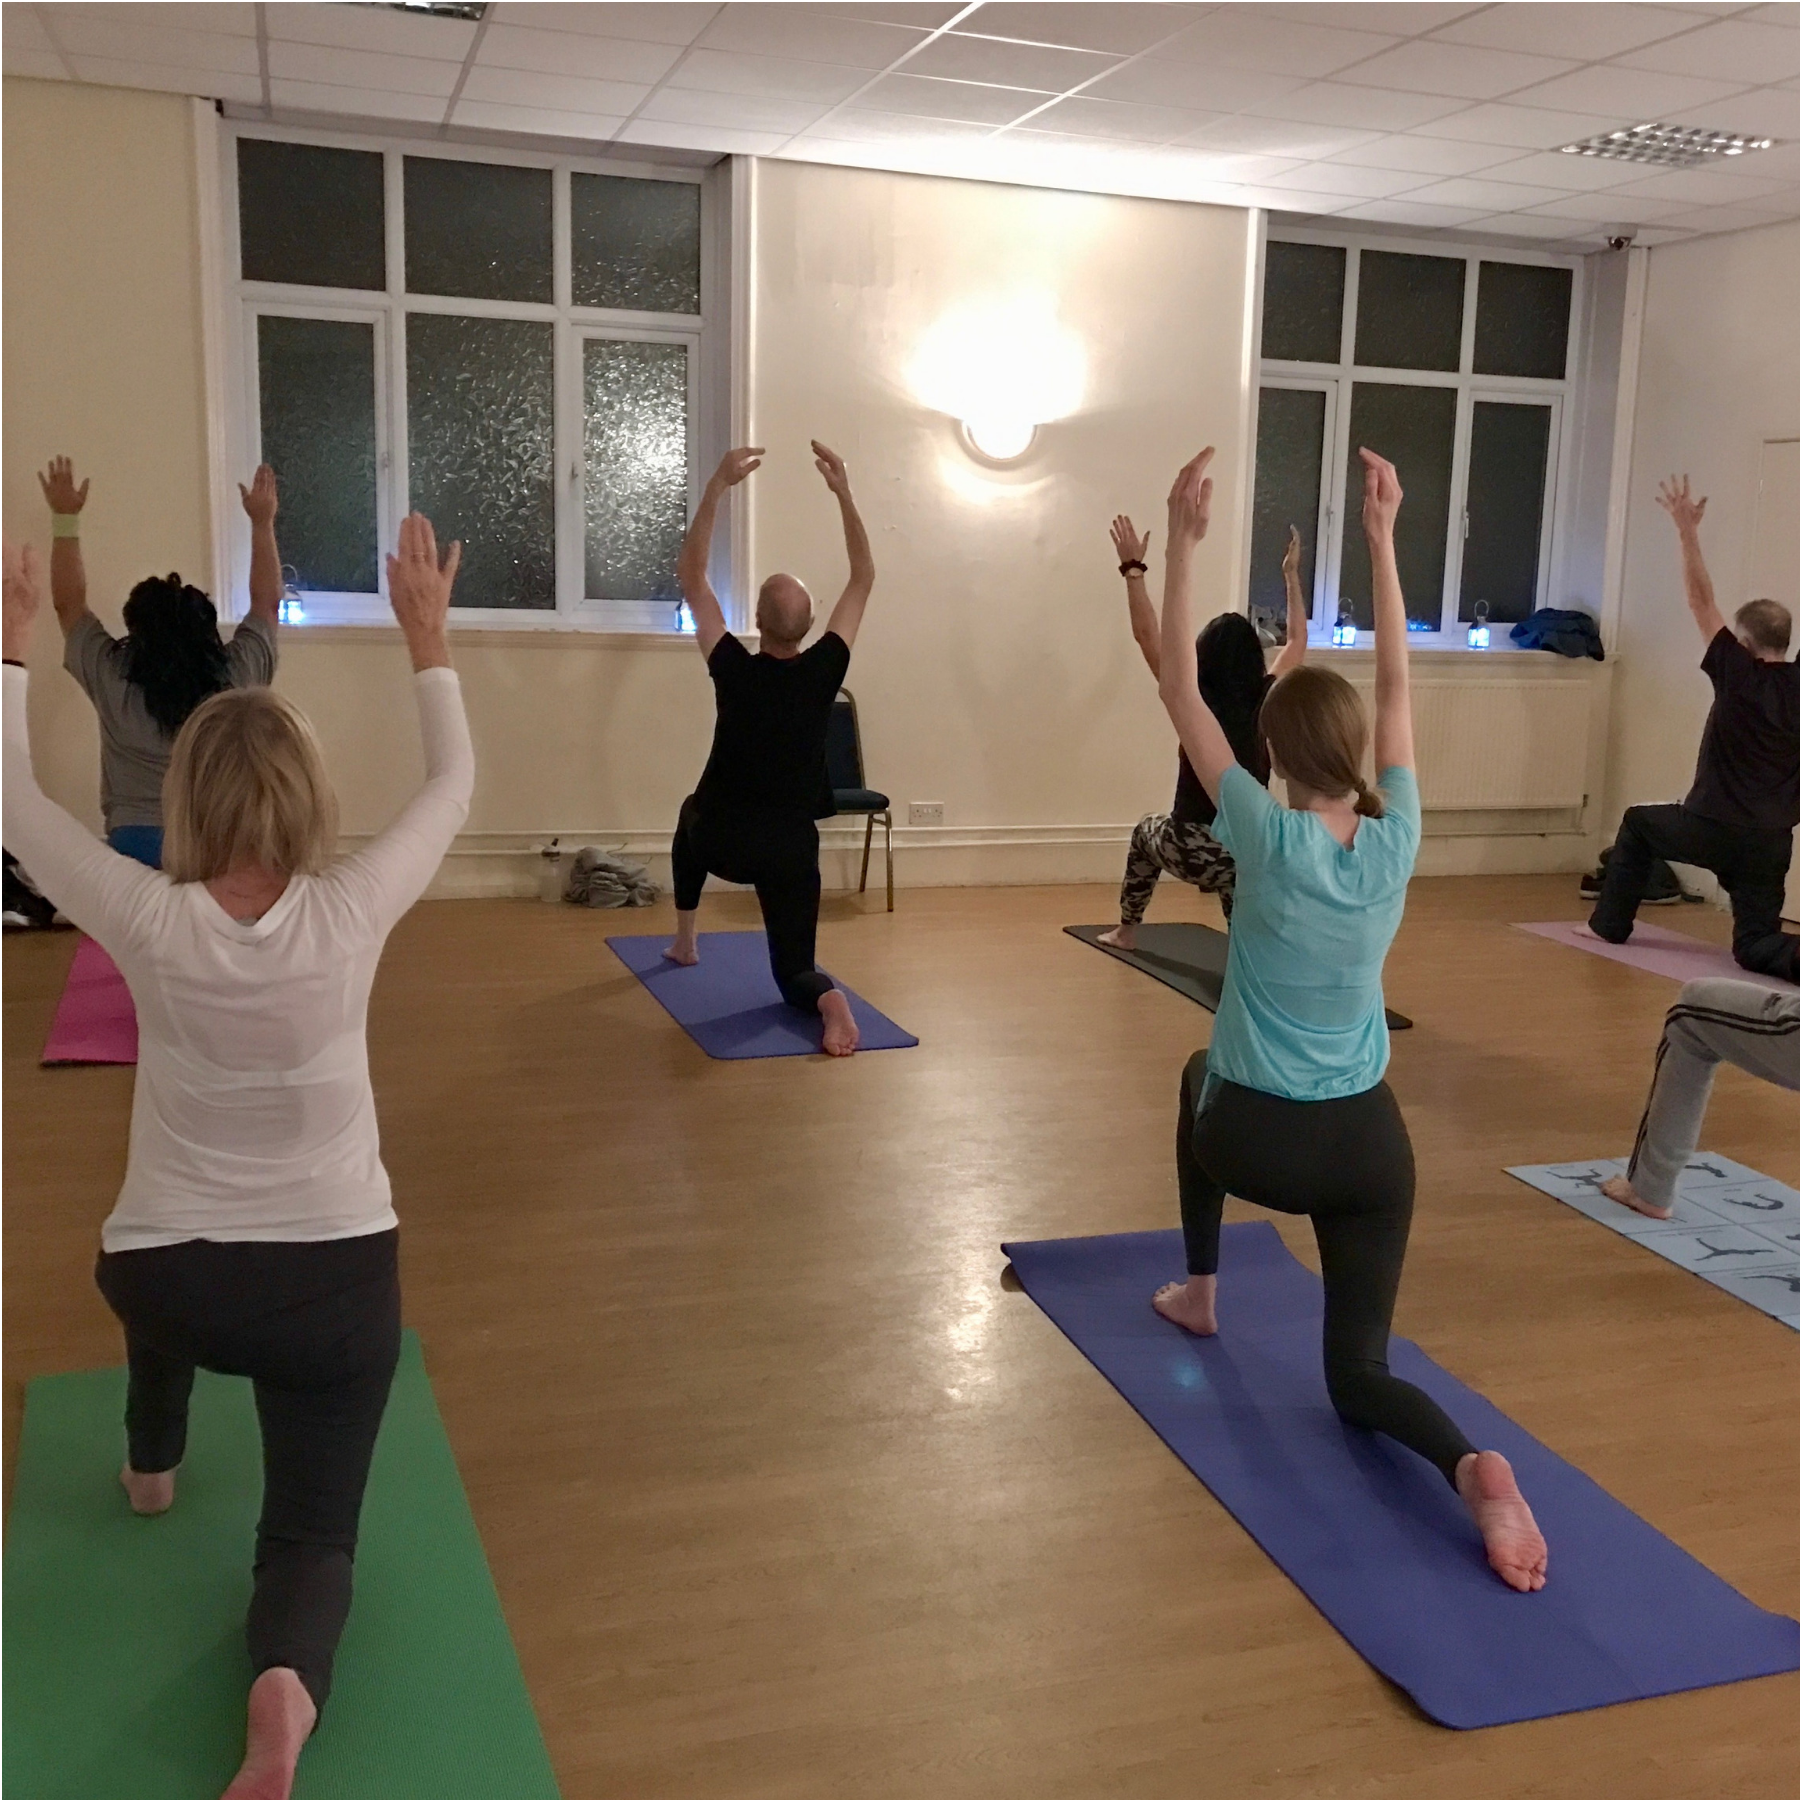 yoga can greatly help feelings of stress, low mood, anxiety and depression